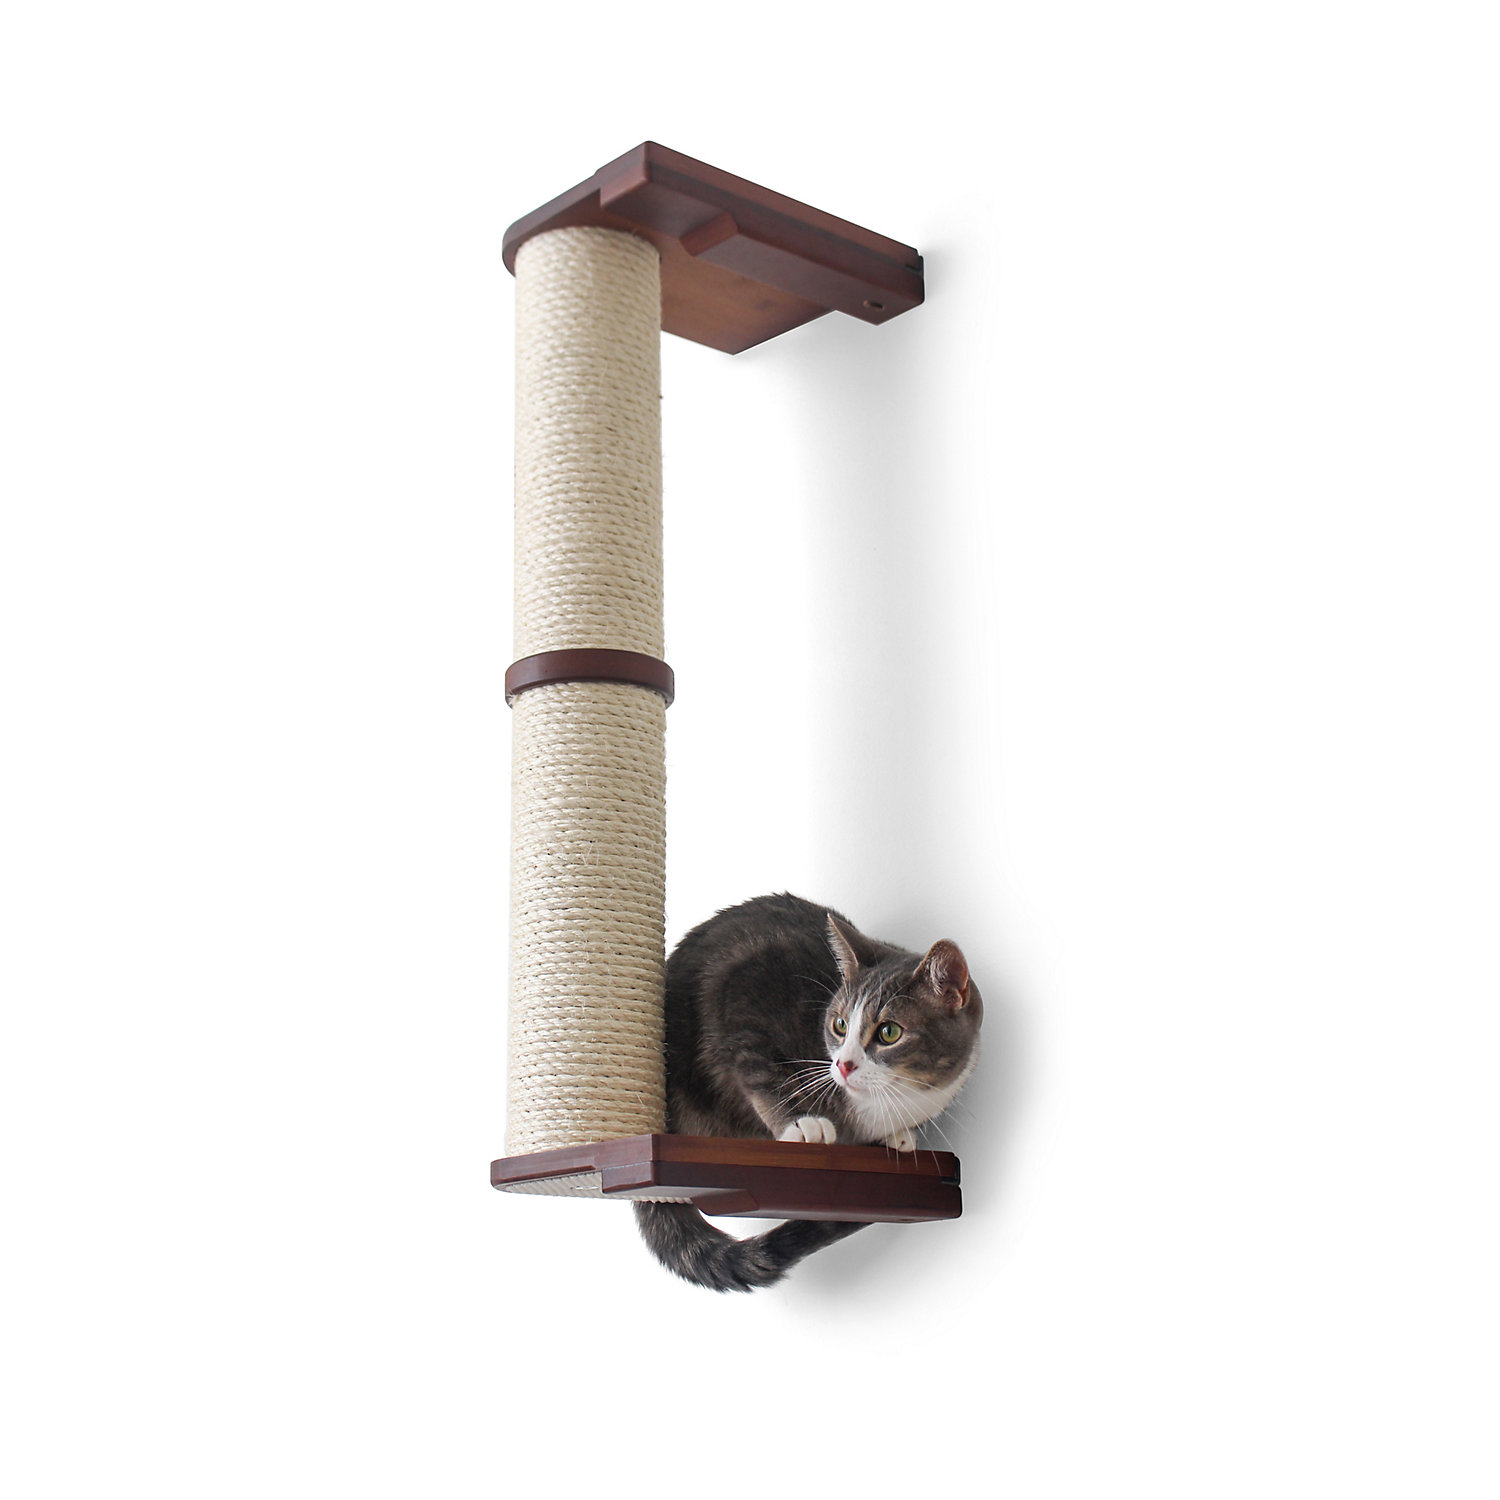 CatastrophiCreations The Cat Mod 48 WallMounted Sisal Pole for Cats in English Chestnut